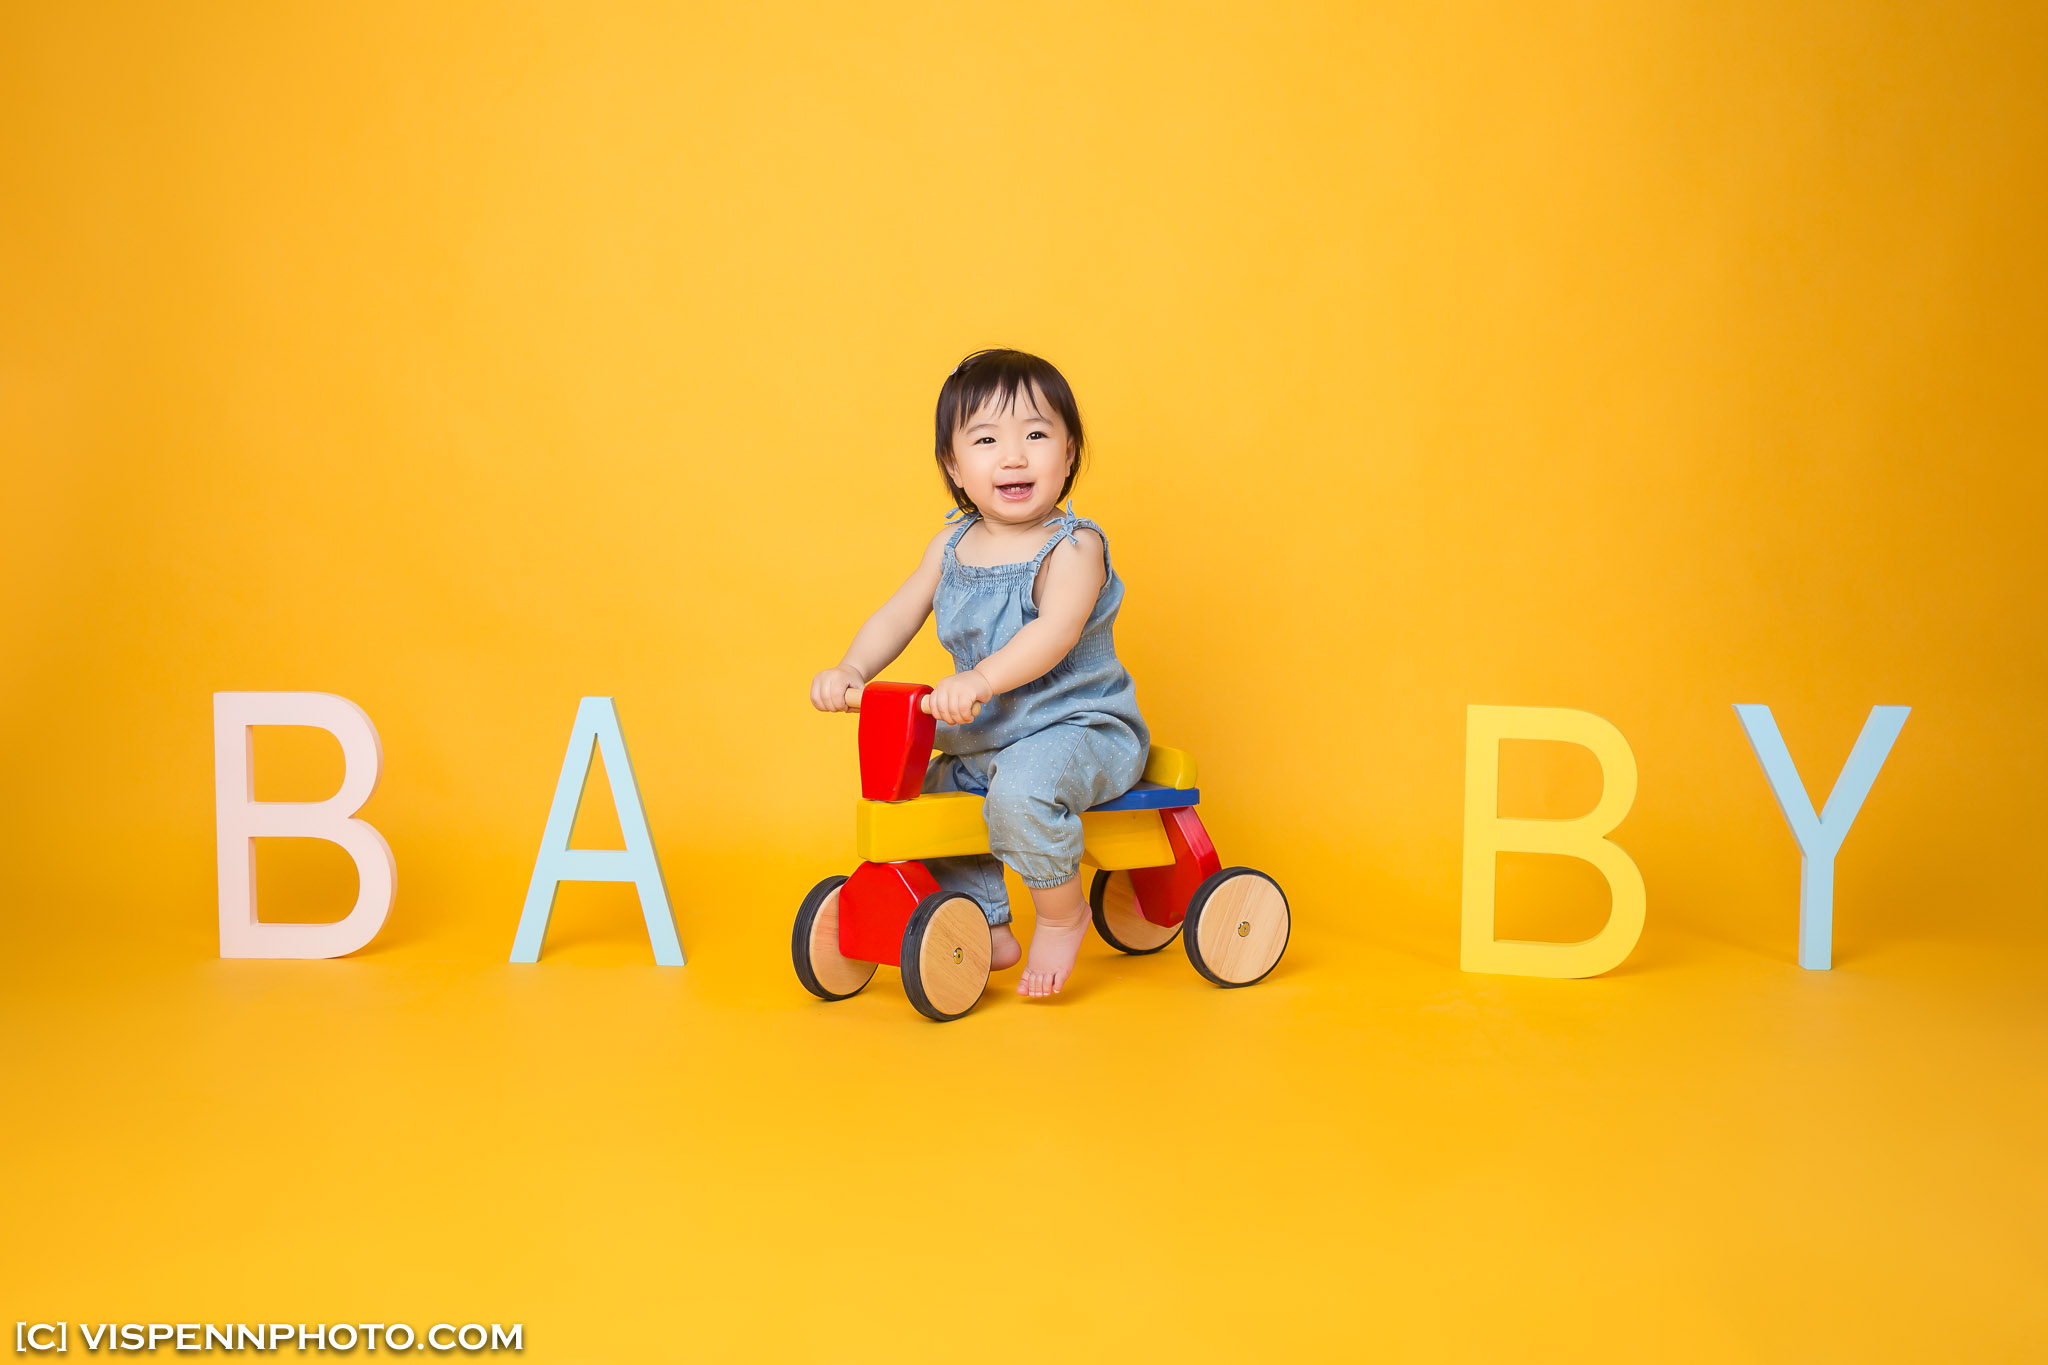 Melbourne Newborn Baby Family Photo BaoBao VISPENN 墨尔本 儿童 宝宝 百天照 满月照 孕妇照 全家福 KIDS NoraHAO 2590 VISPENN